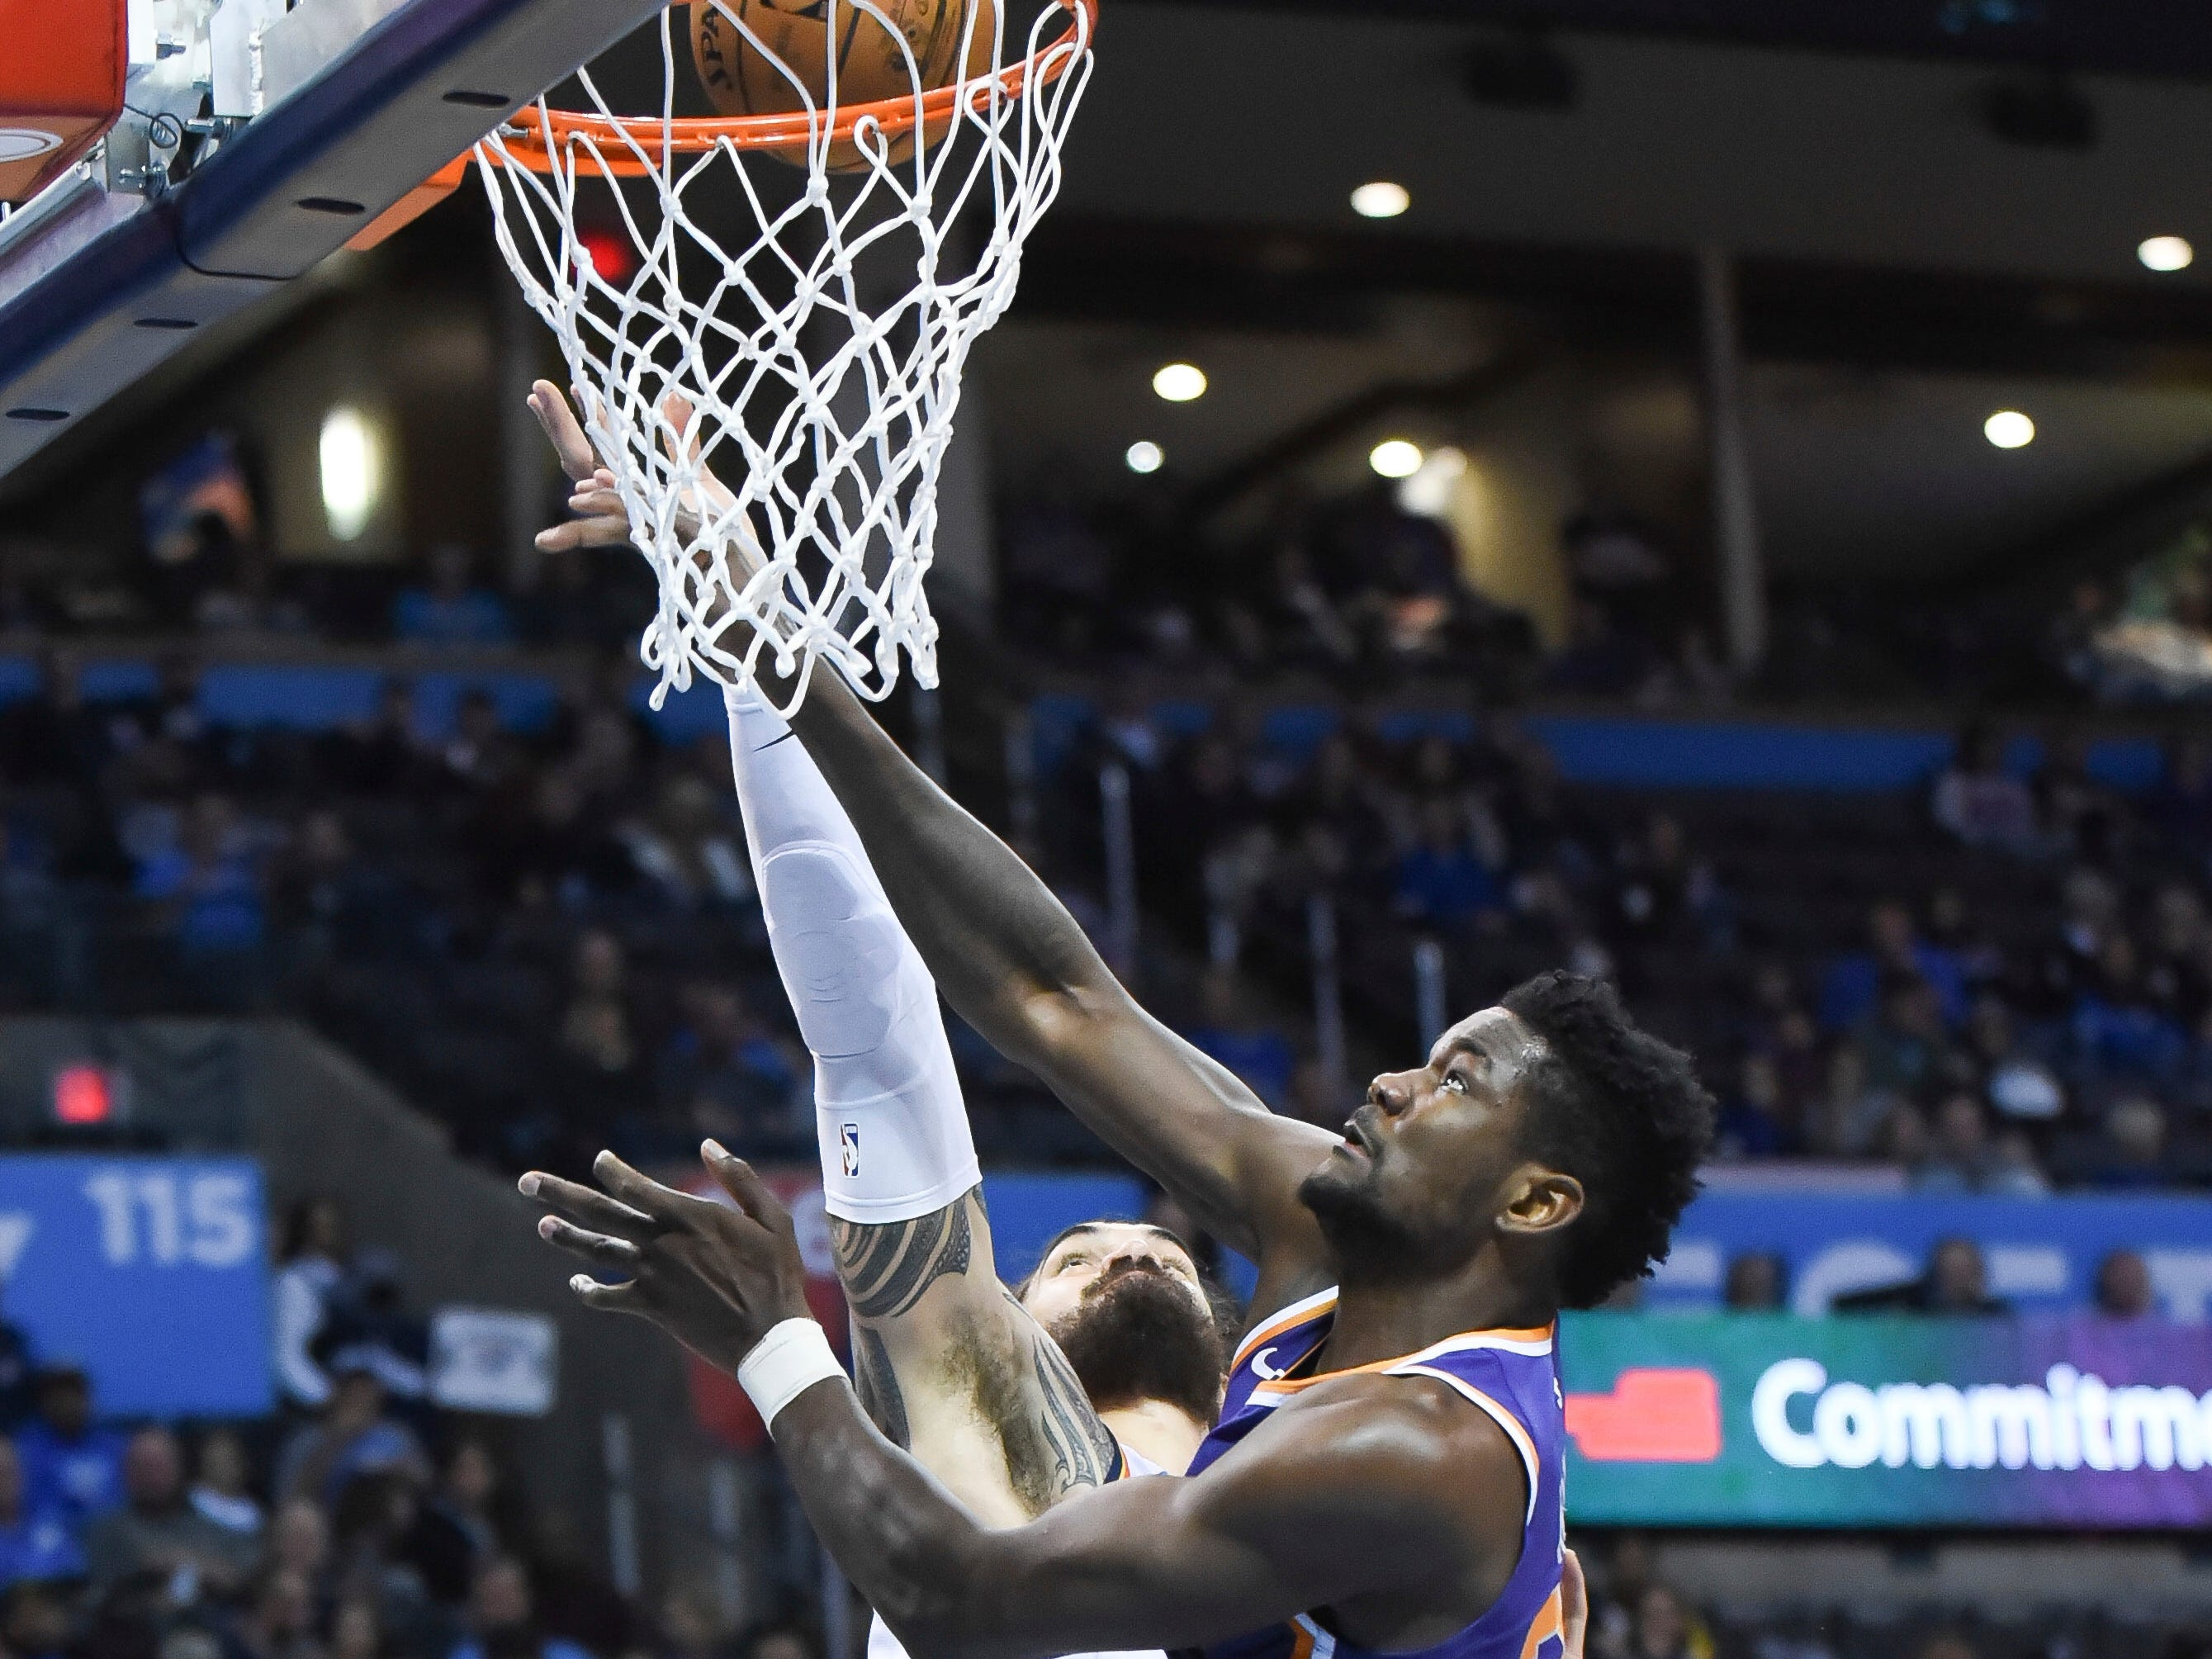 Oklahoma City Thunder center Steven Adams (12) tries to shoot the ball over Phoenix Suns center Deandre Ayton (22) in the second half of an NBA basketball game in Oklahoma City, Monday, Nov. 12, 2018.